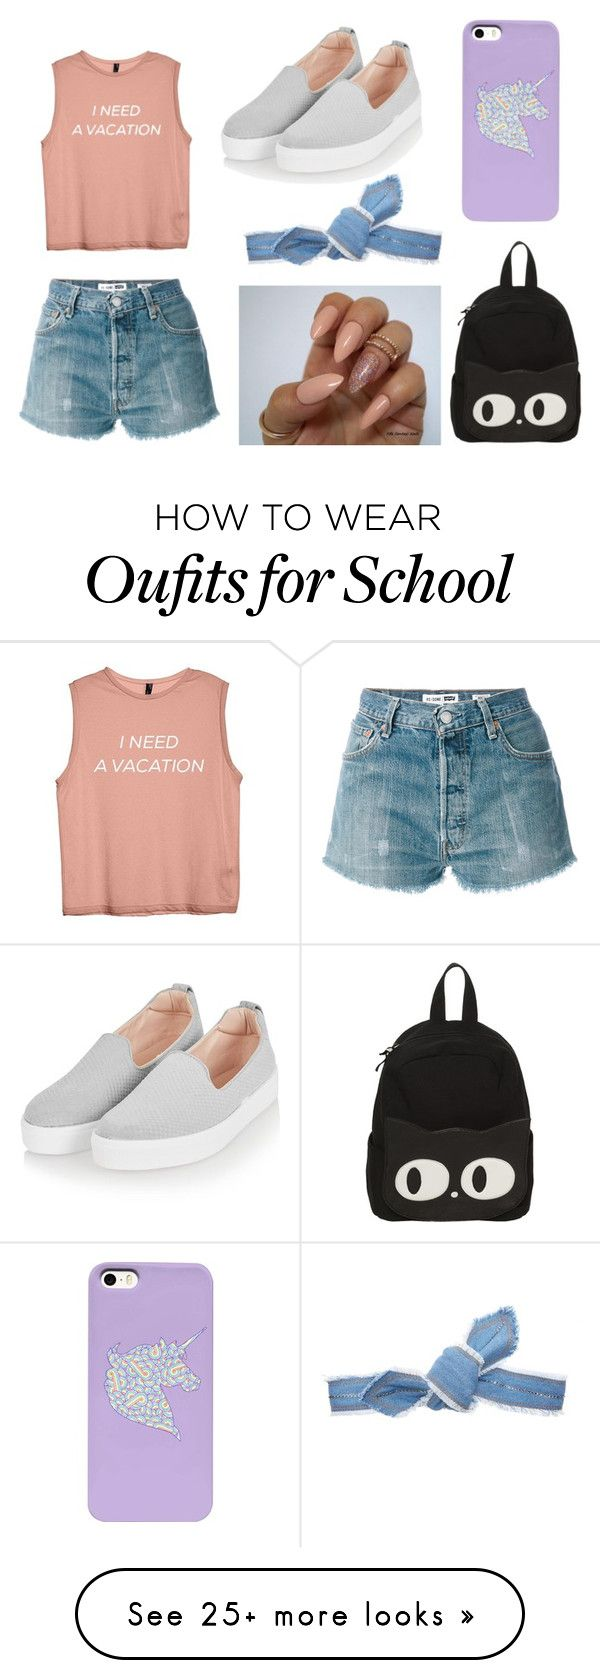 """"" by mariel-manriquez on Polyvore featuring RE/DONE, Colette Malouf and Topshop"